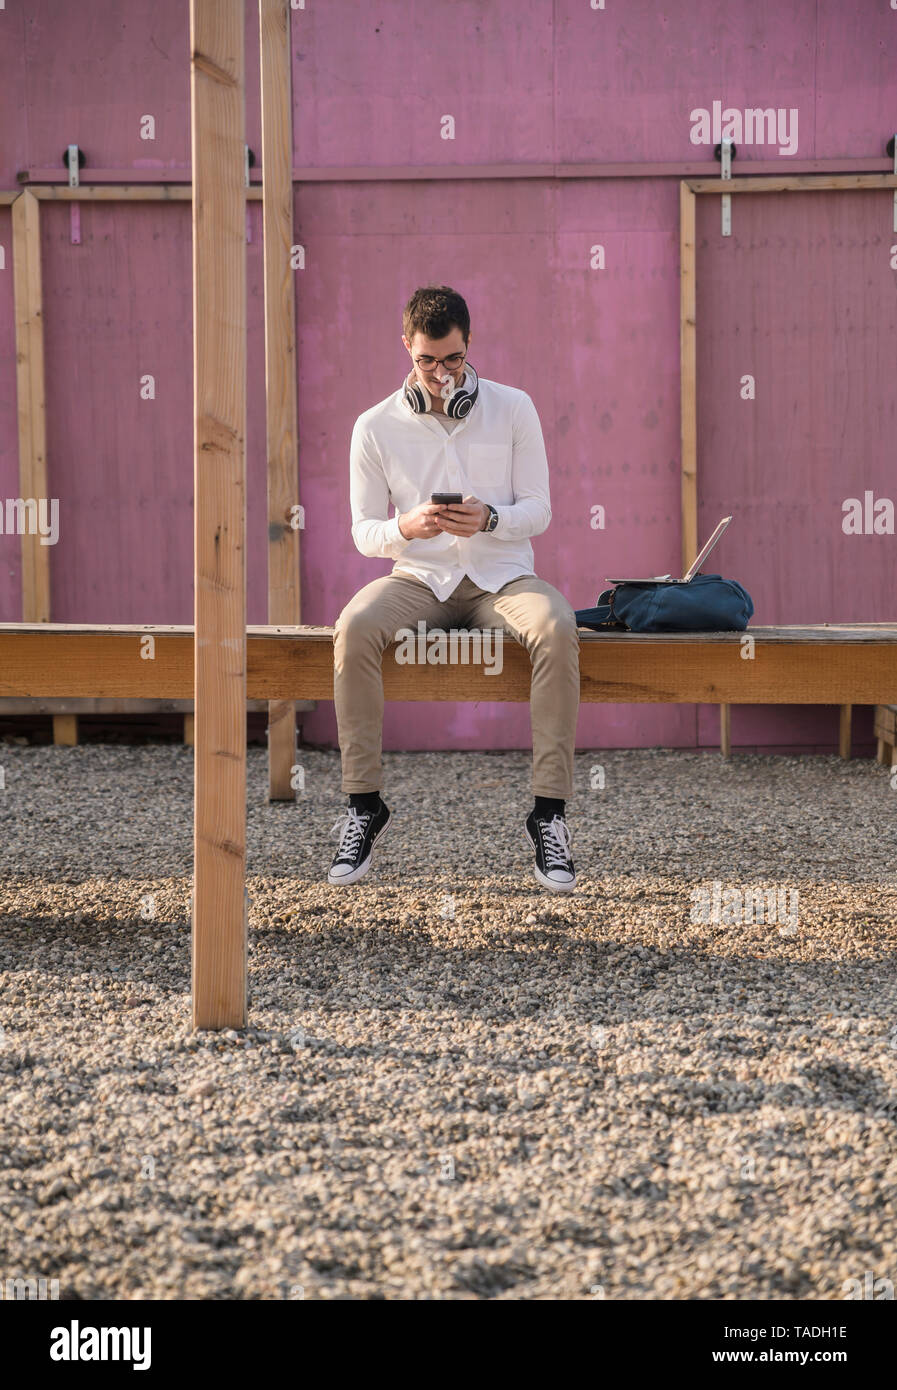 Young man sitting on platform using cell phone - Stock Image